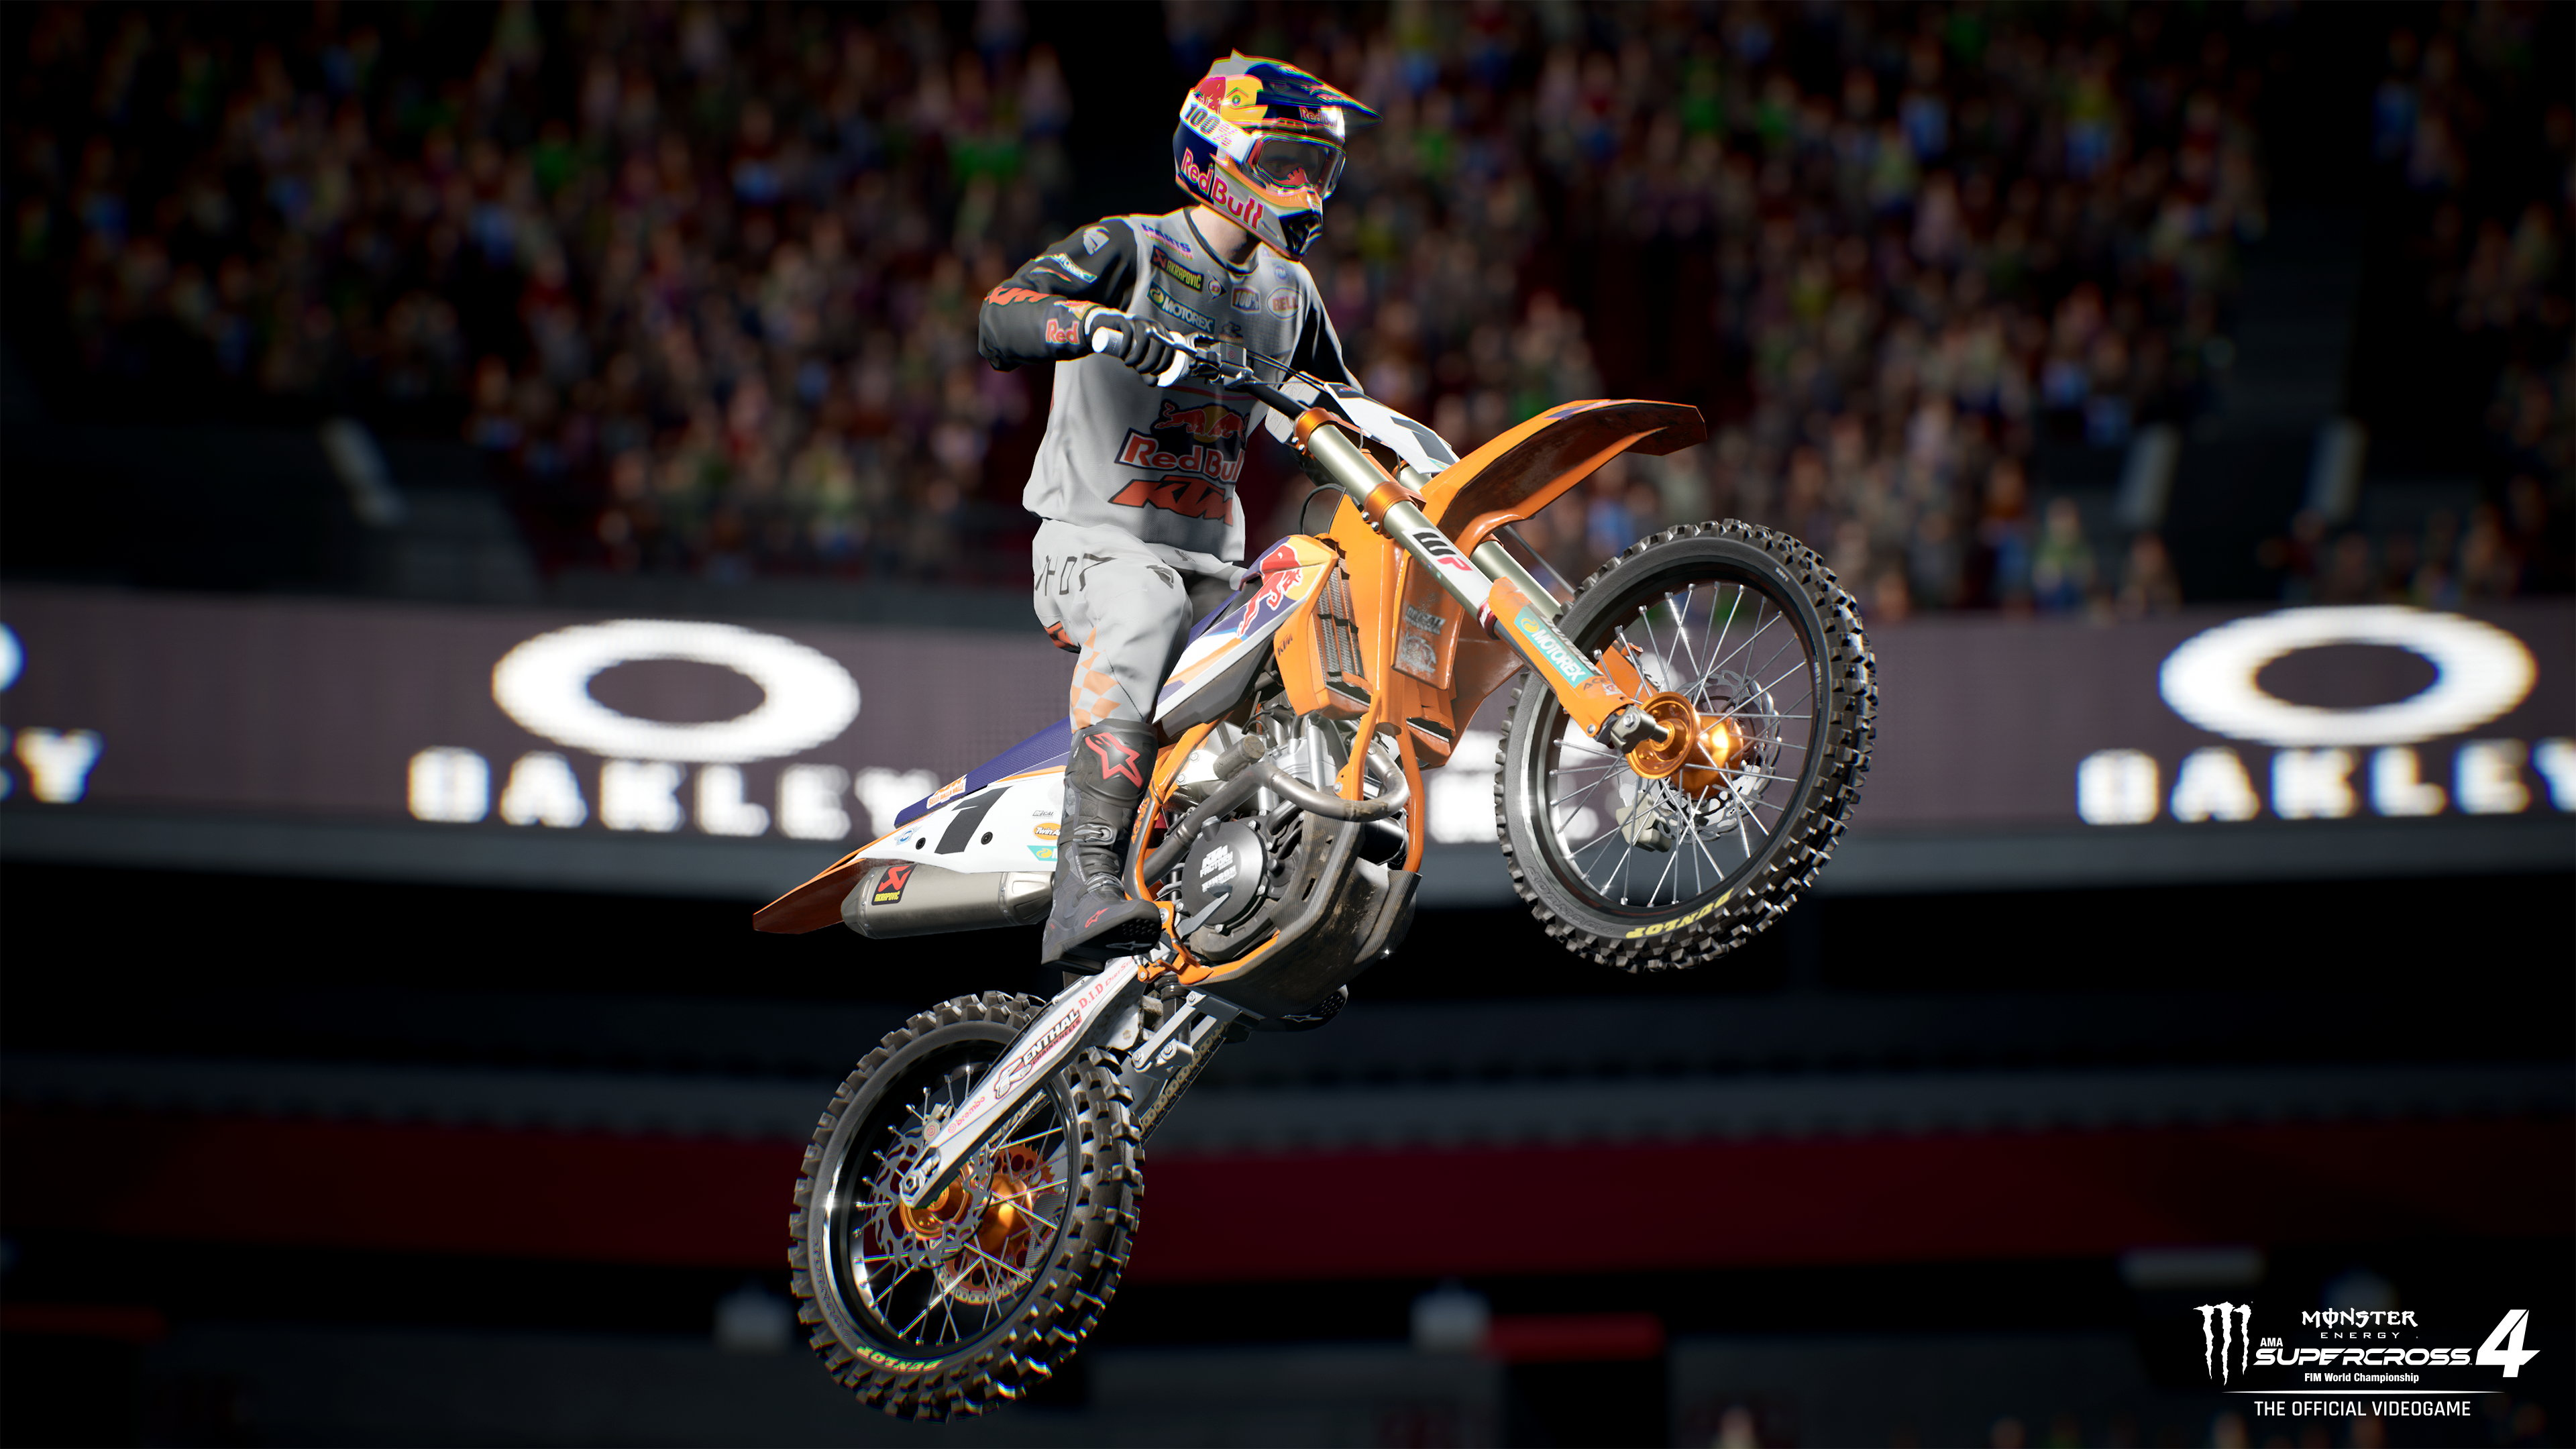 a rider takes a huge jump with the arena's mezzanine video board in the background in Monster Energy Supercross 4